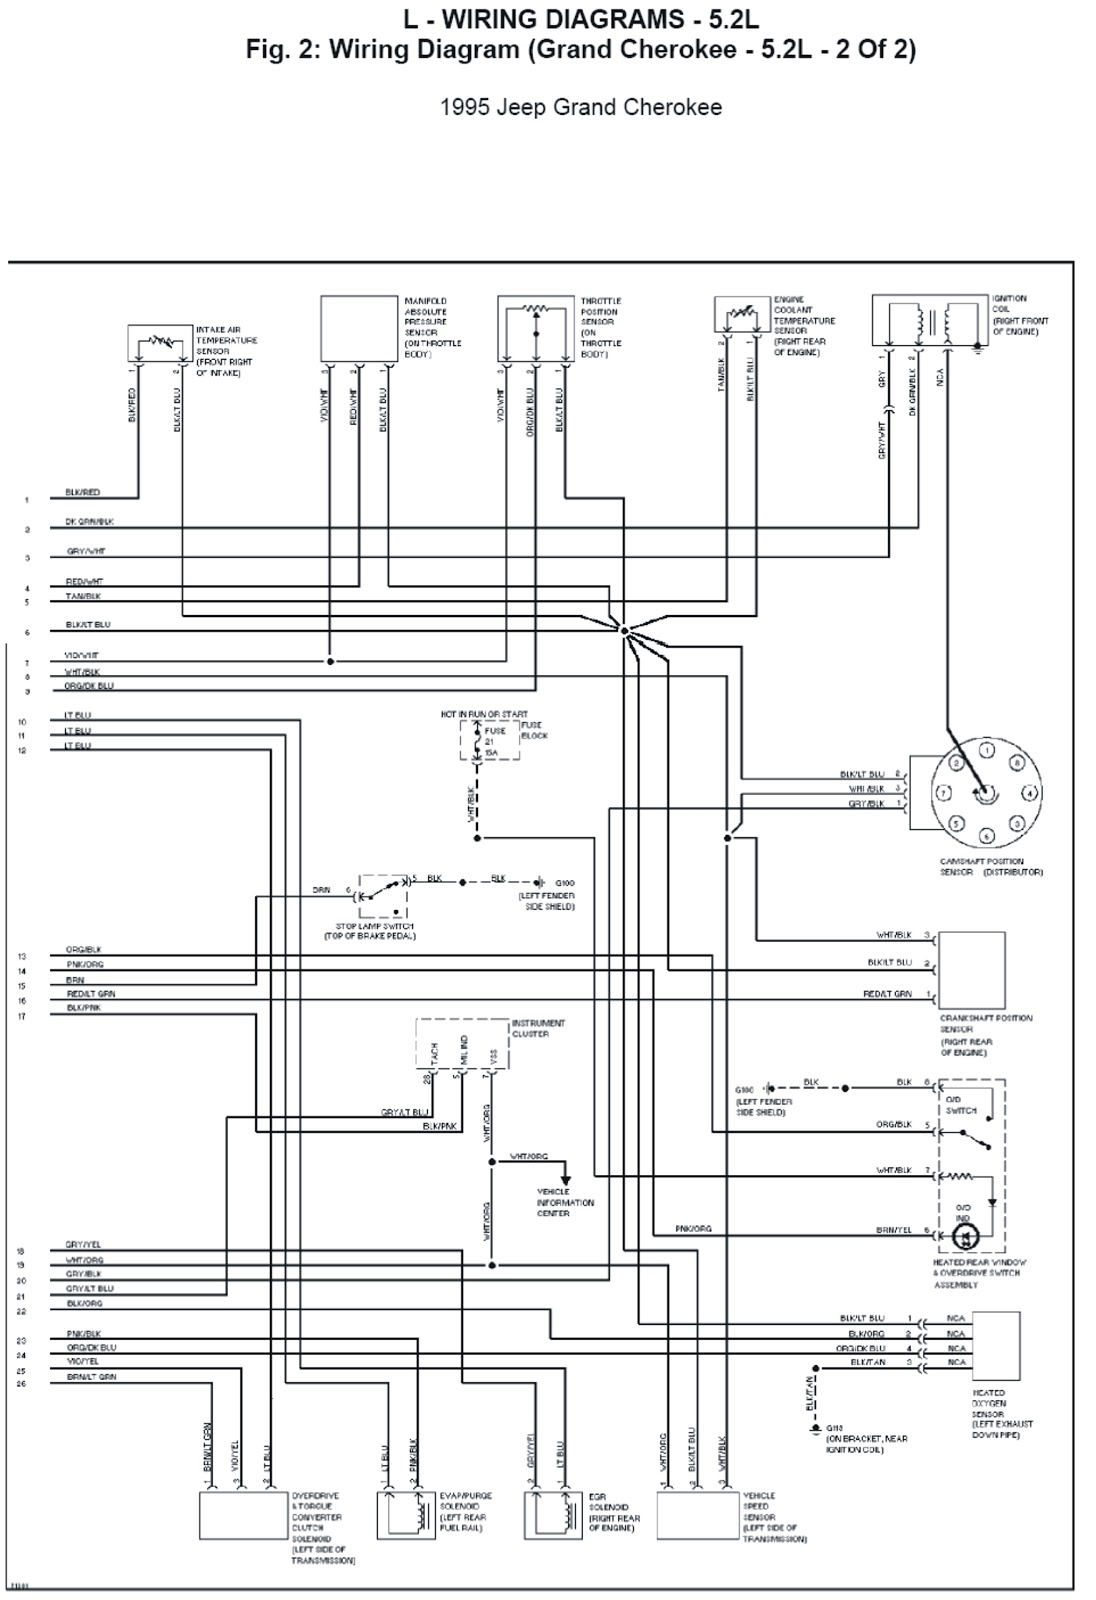 2000 Jeep Cherokee Radio Wiring Diagram from 3.bp.blogspot.com